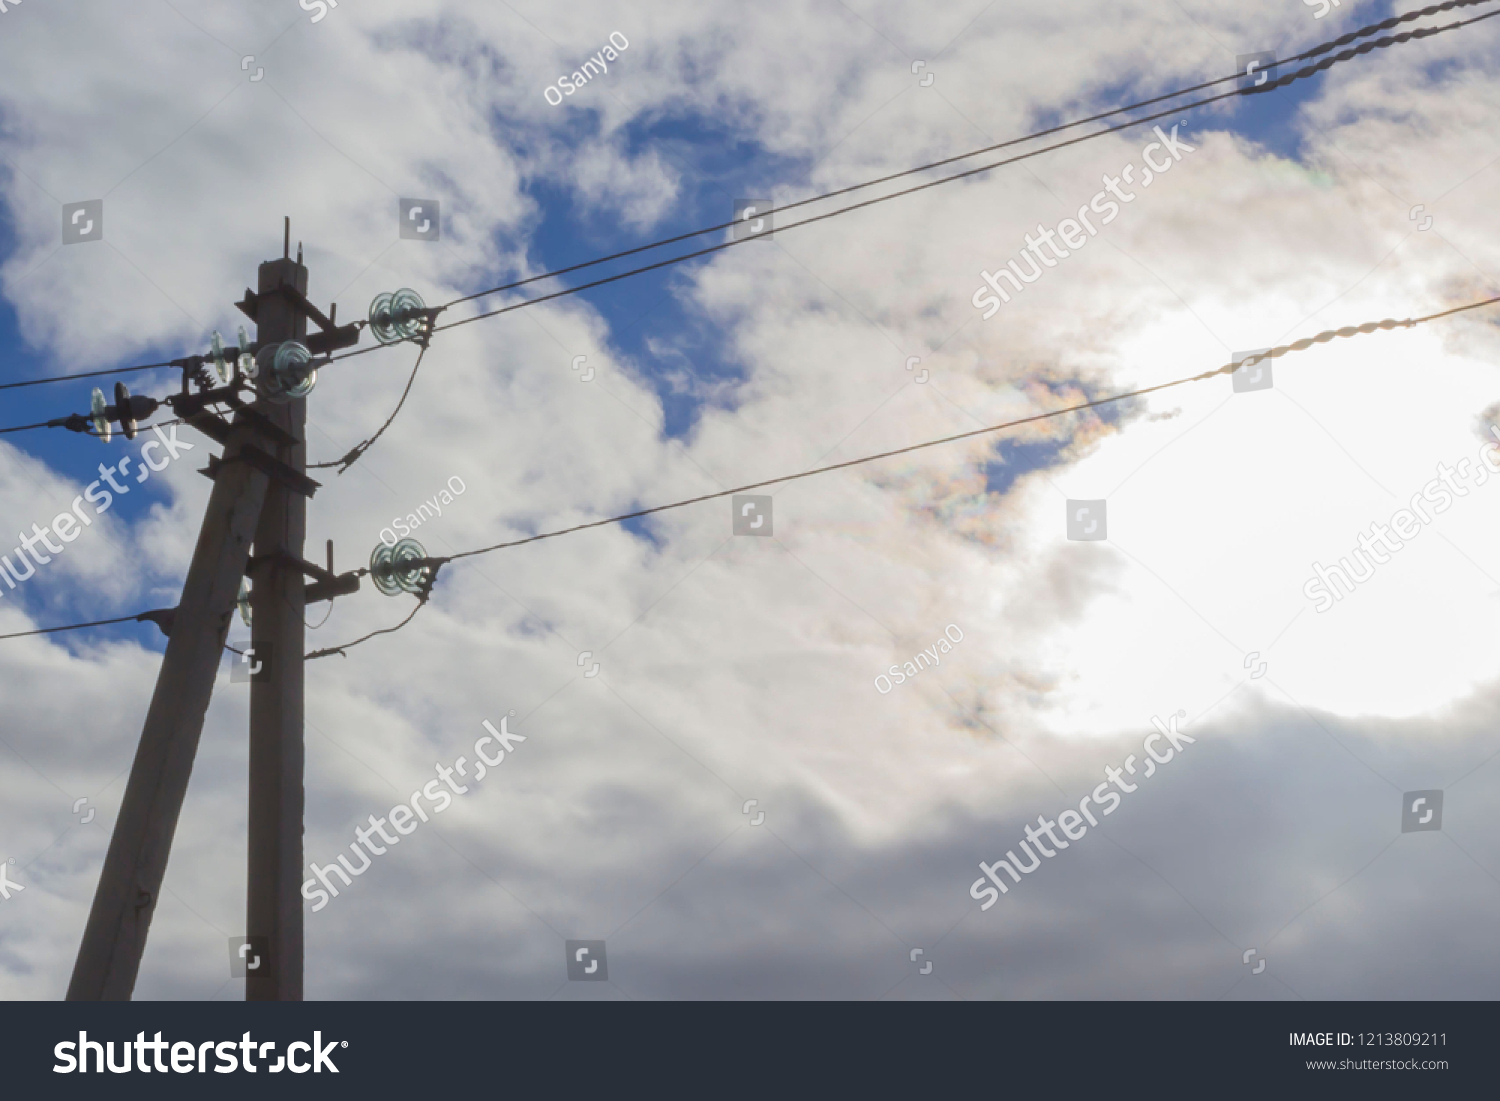 hight resolution of electrical support for wires